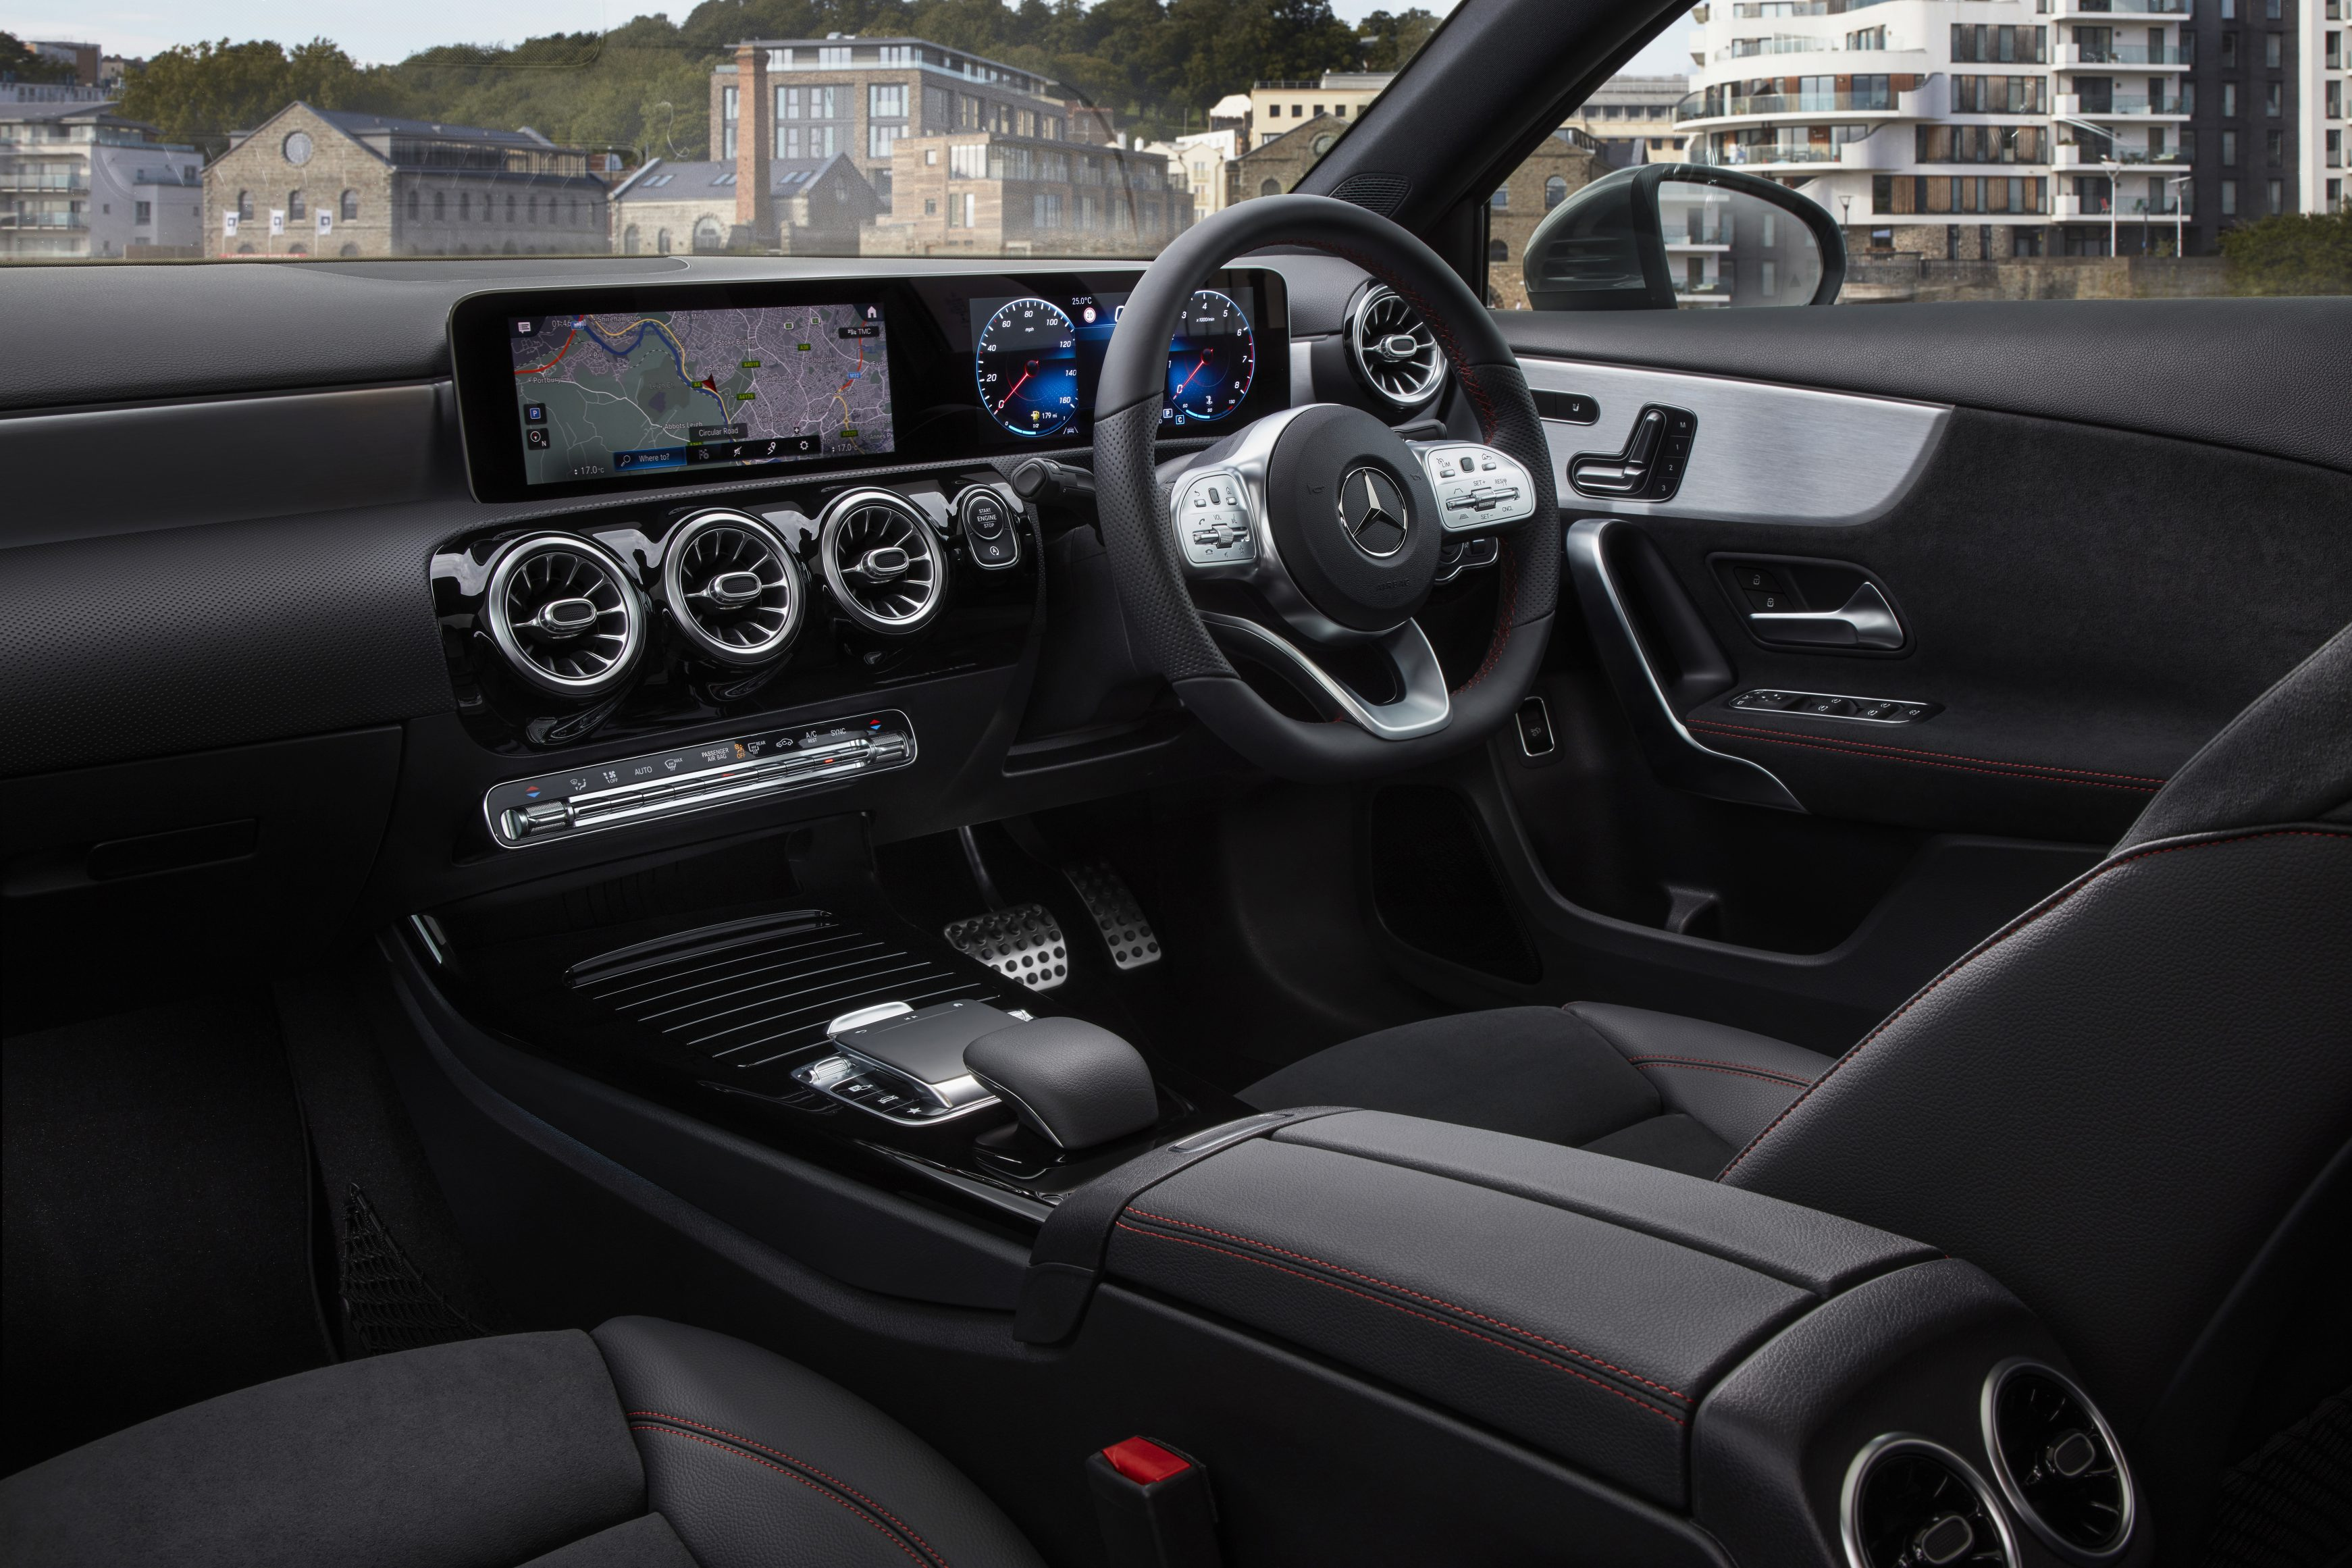 2021 Mercedes-Benz A-Class Saloon interior